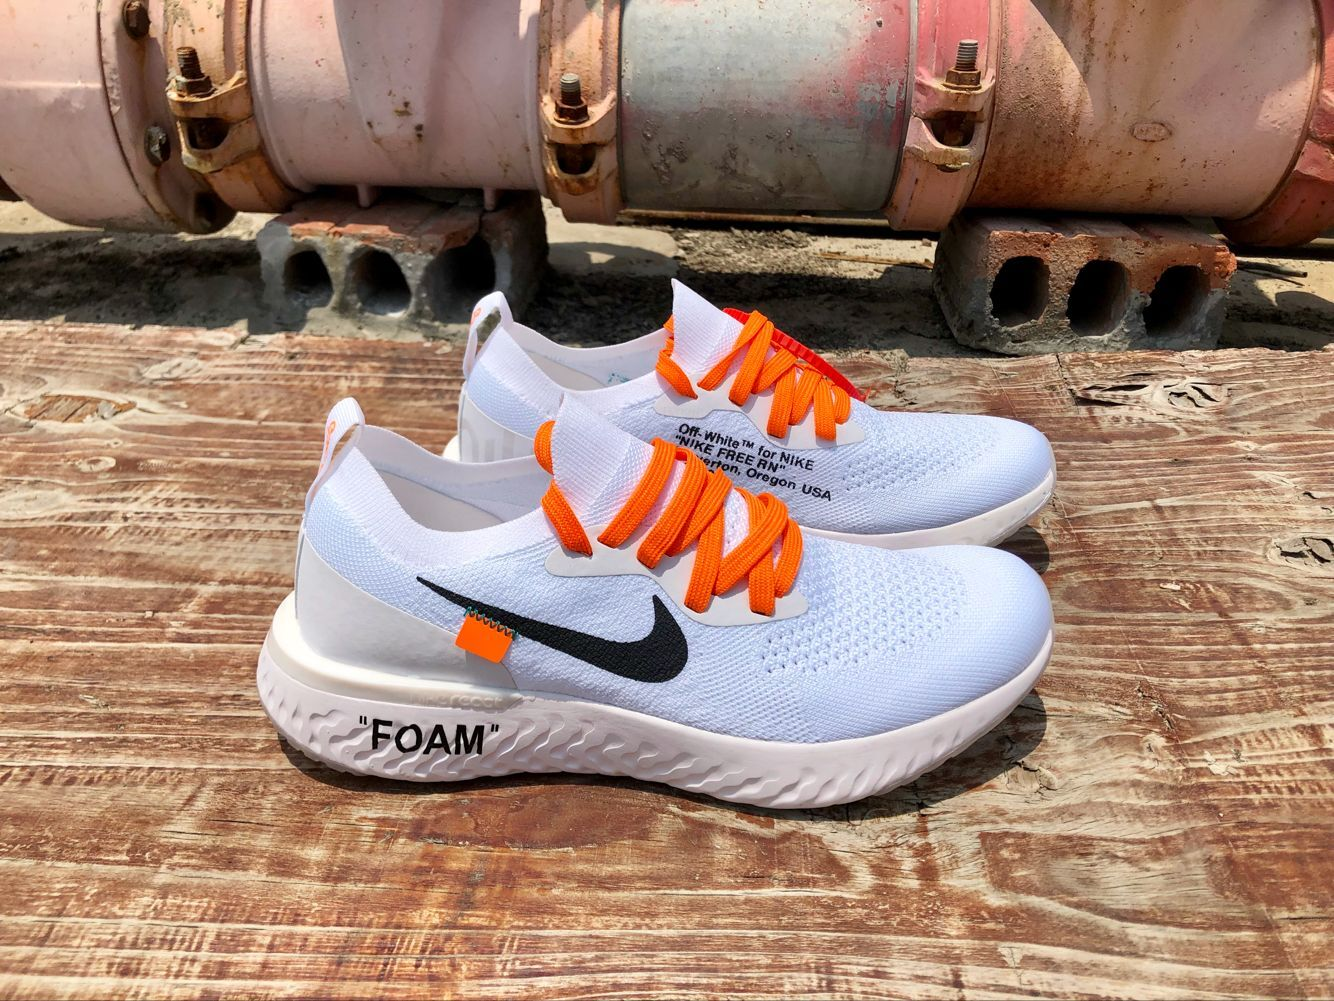 new style a7126 c9f78 Nike Free 5.0 : Real Nike Running Shoes, Nike Running Shoes